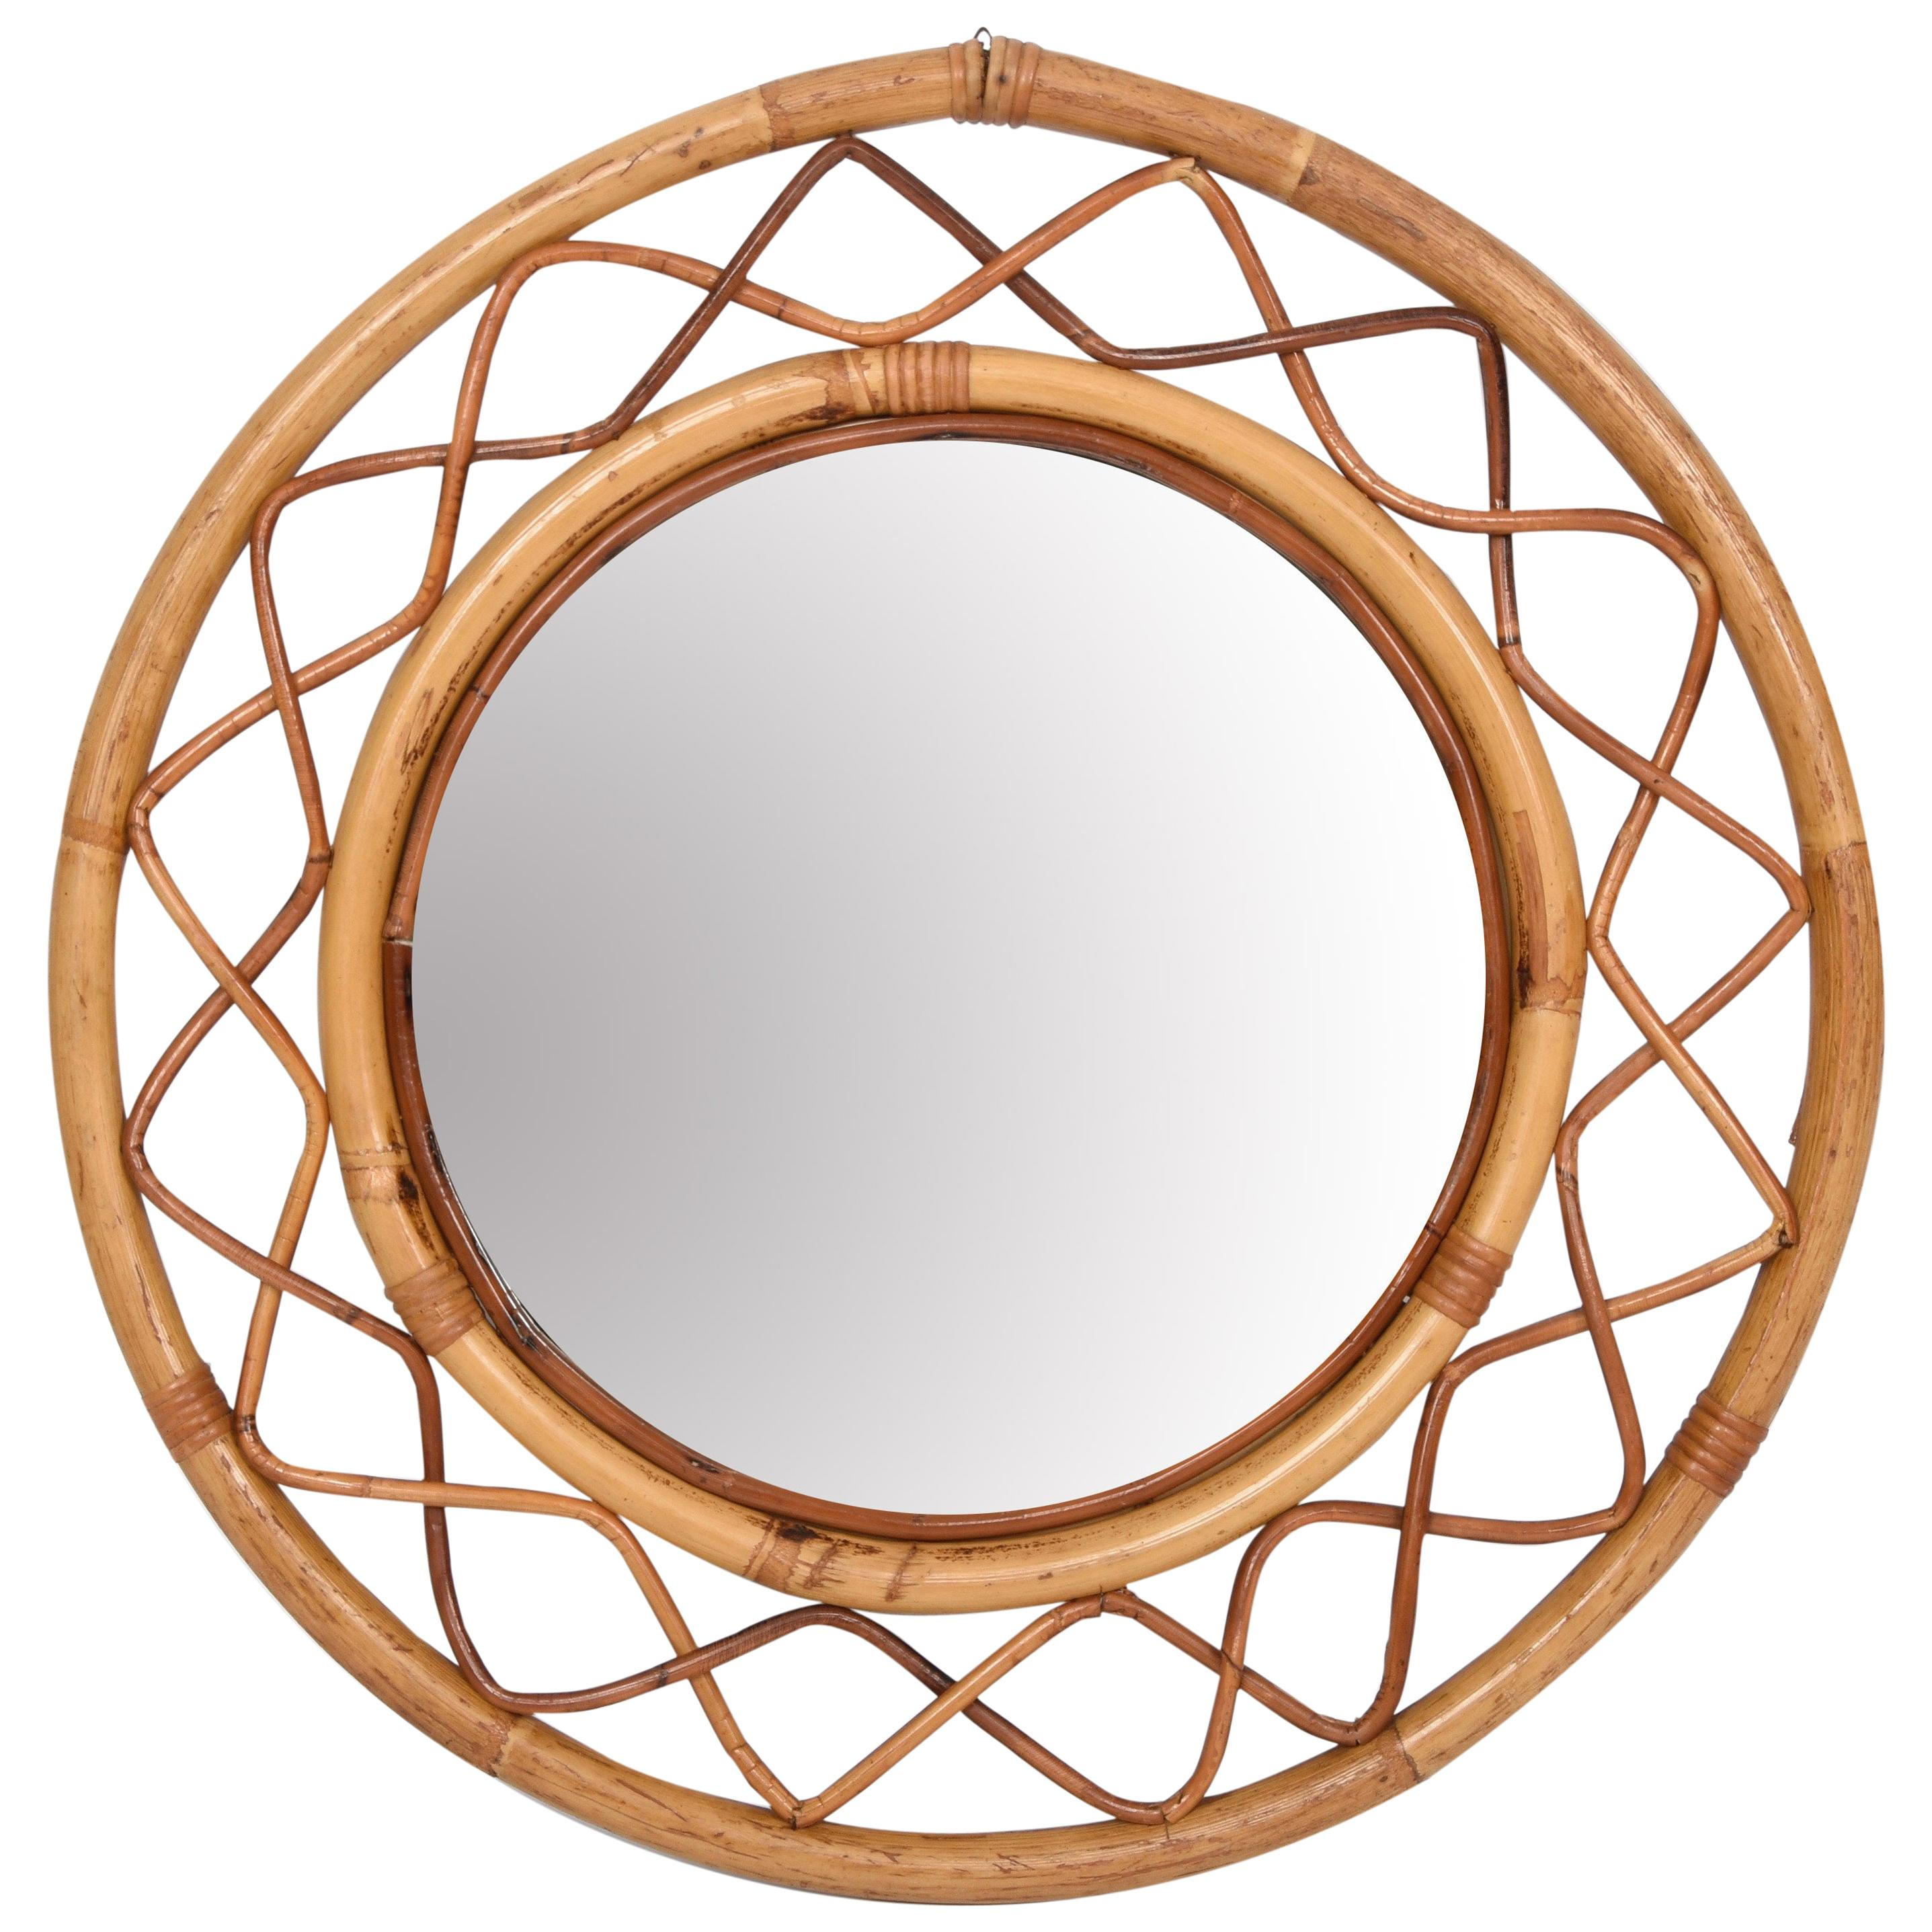 Midcentury Round Italian Mirror with Double Bamboo Weaved Wicker Frame, 1960s